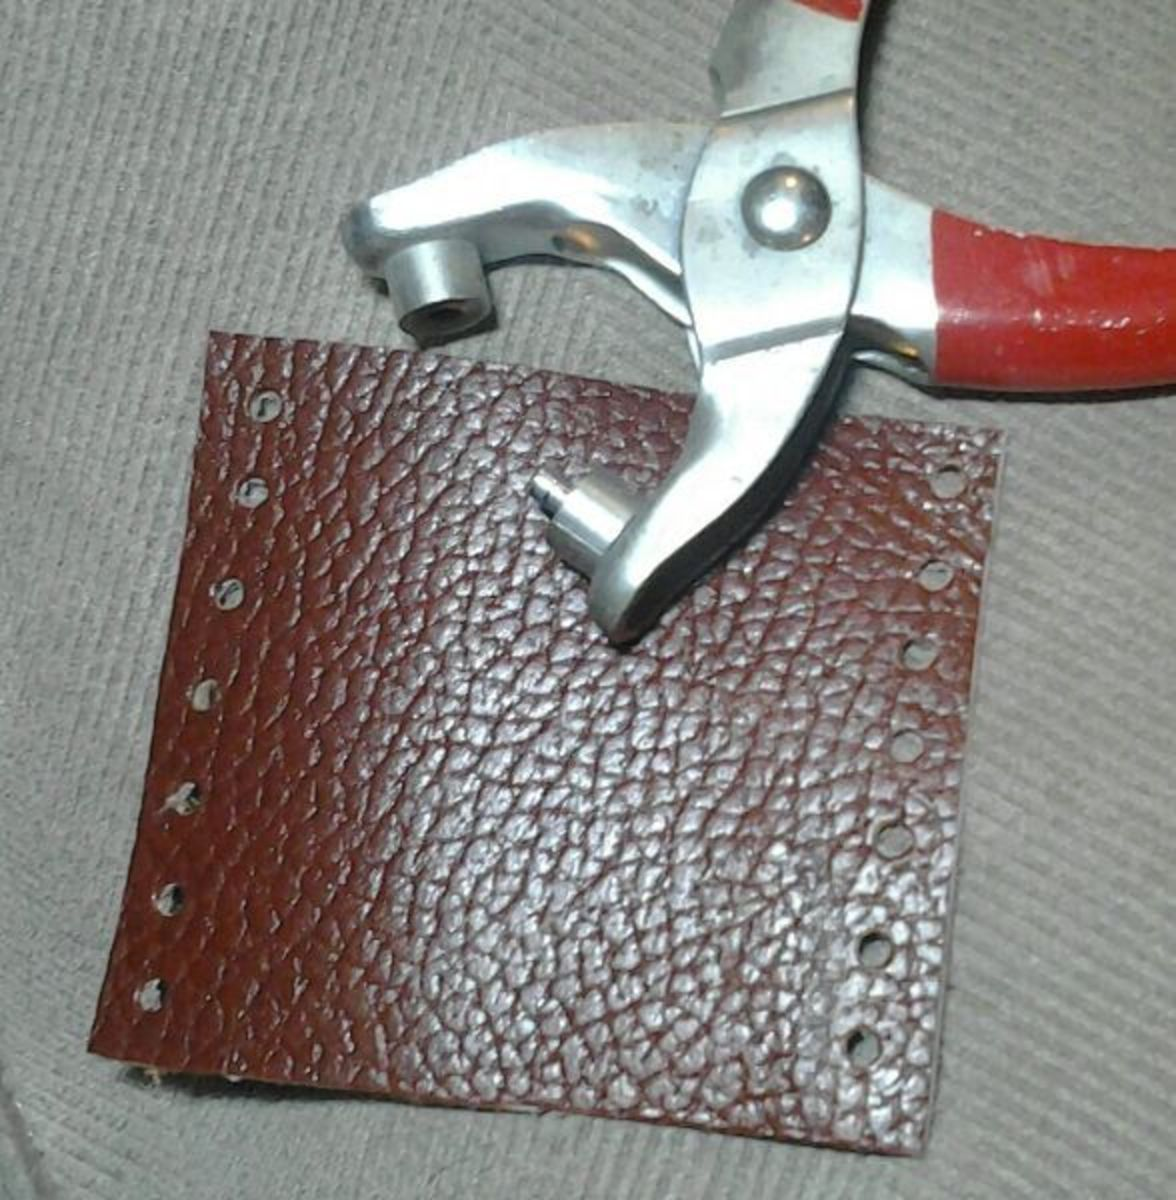 Cut your leather and punch the needed holes. I used 7, but do what makes sense for your project.